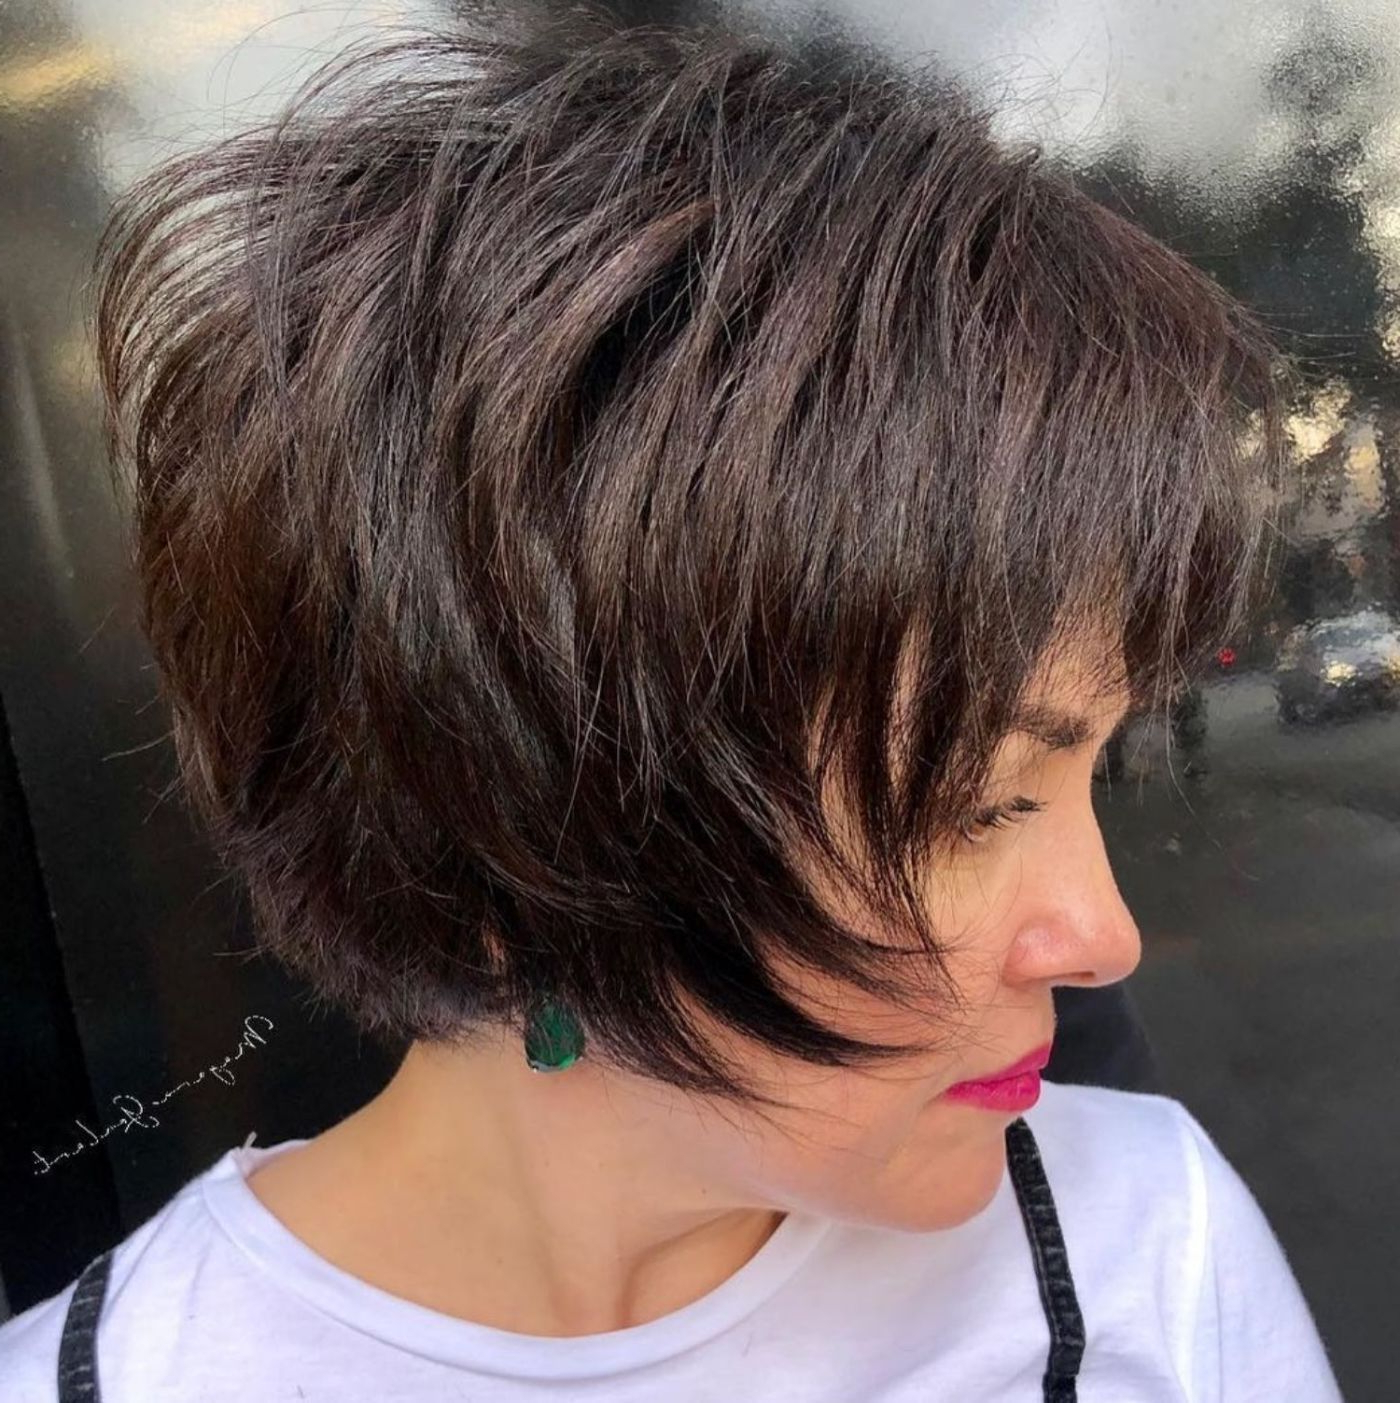 60 Short Shag Hairstyles That You Simply Can't Miss In 2019 For Short Chocolate Bob Hairstyles With Feathered Layers (View 2 of 20)